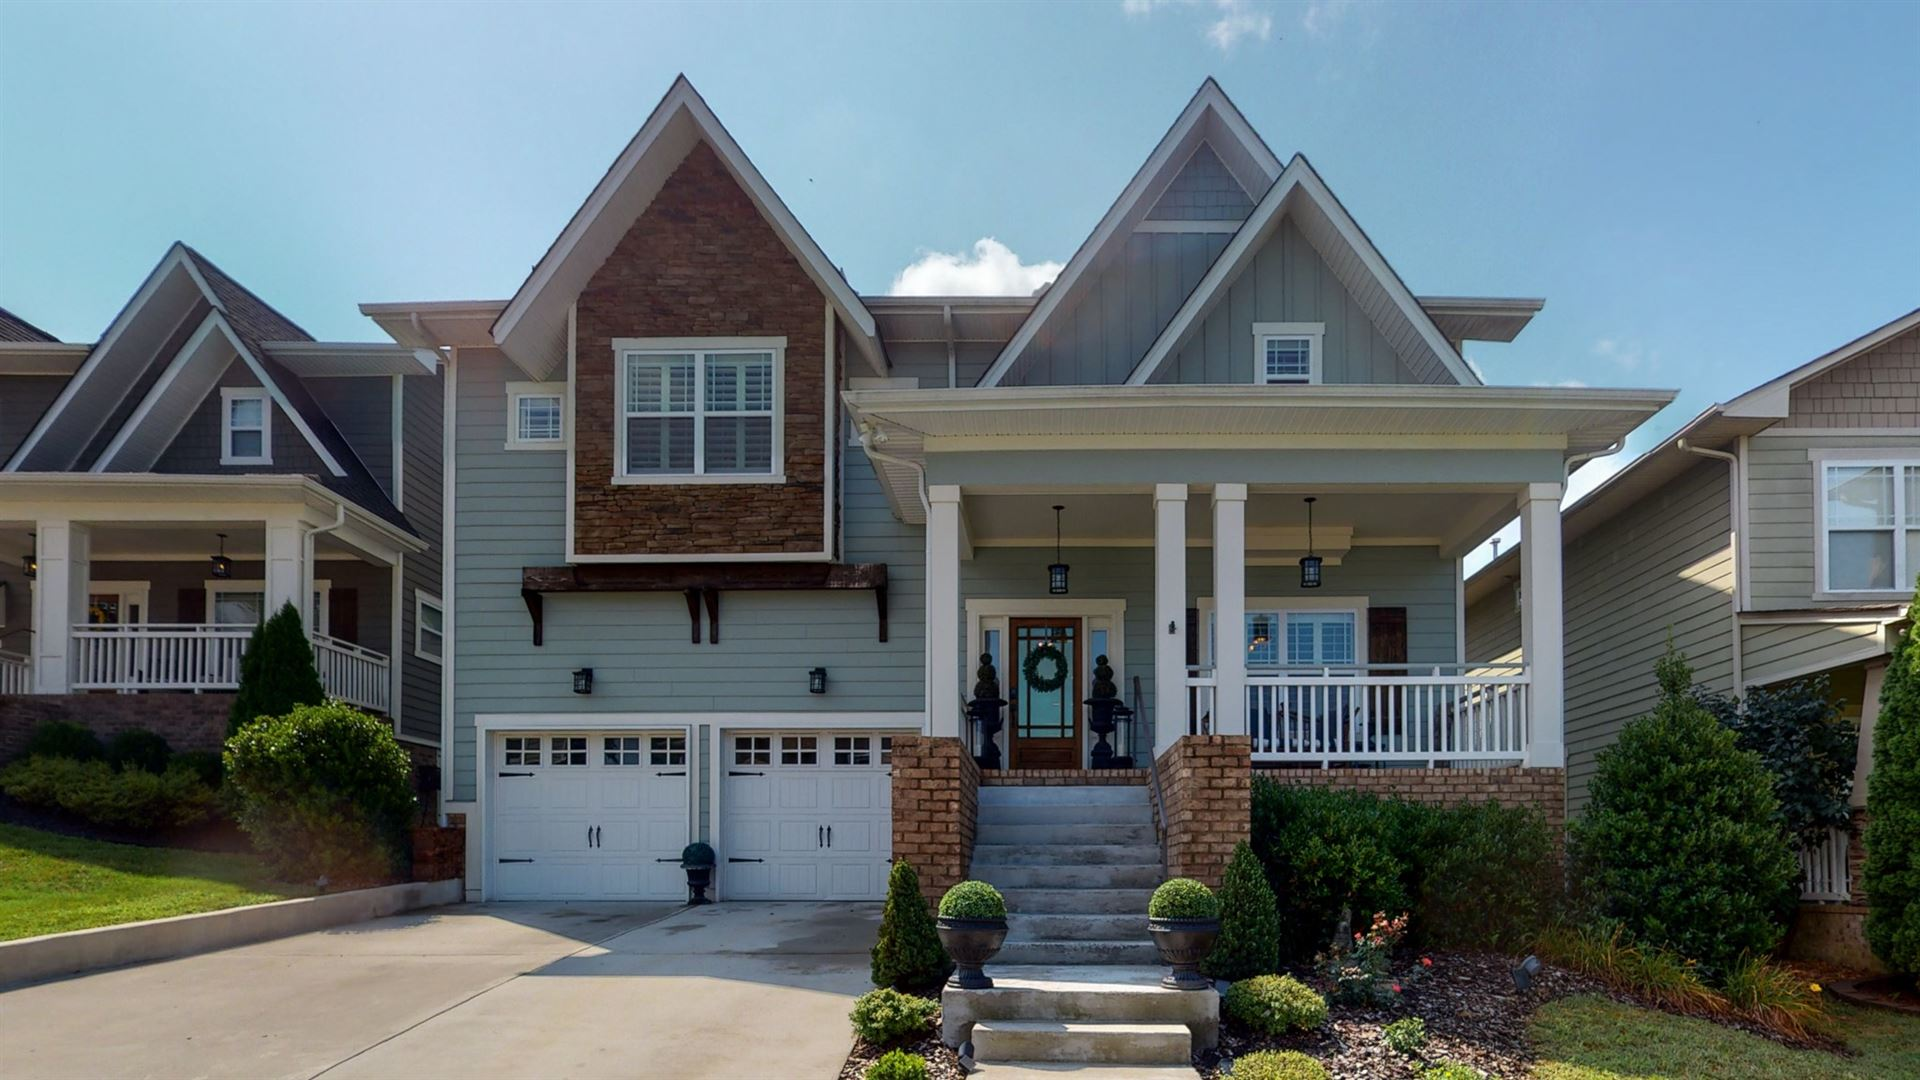 Photo of 472 High Point Ter, Brentwood, TN 37027 (MLS # 2175776)